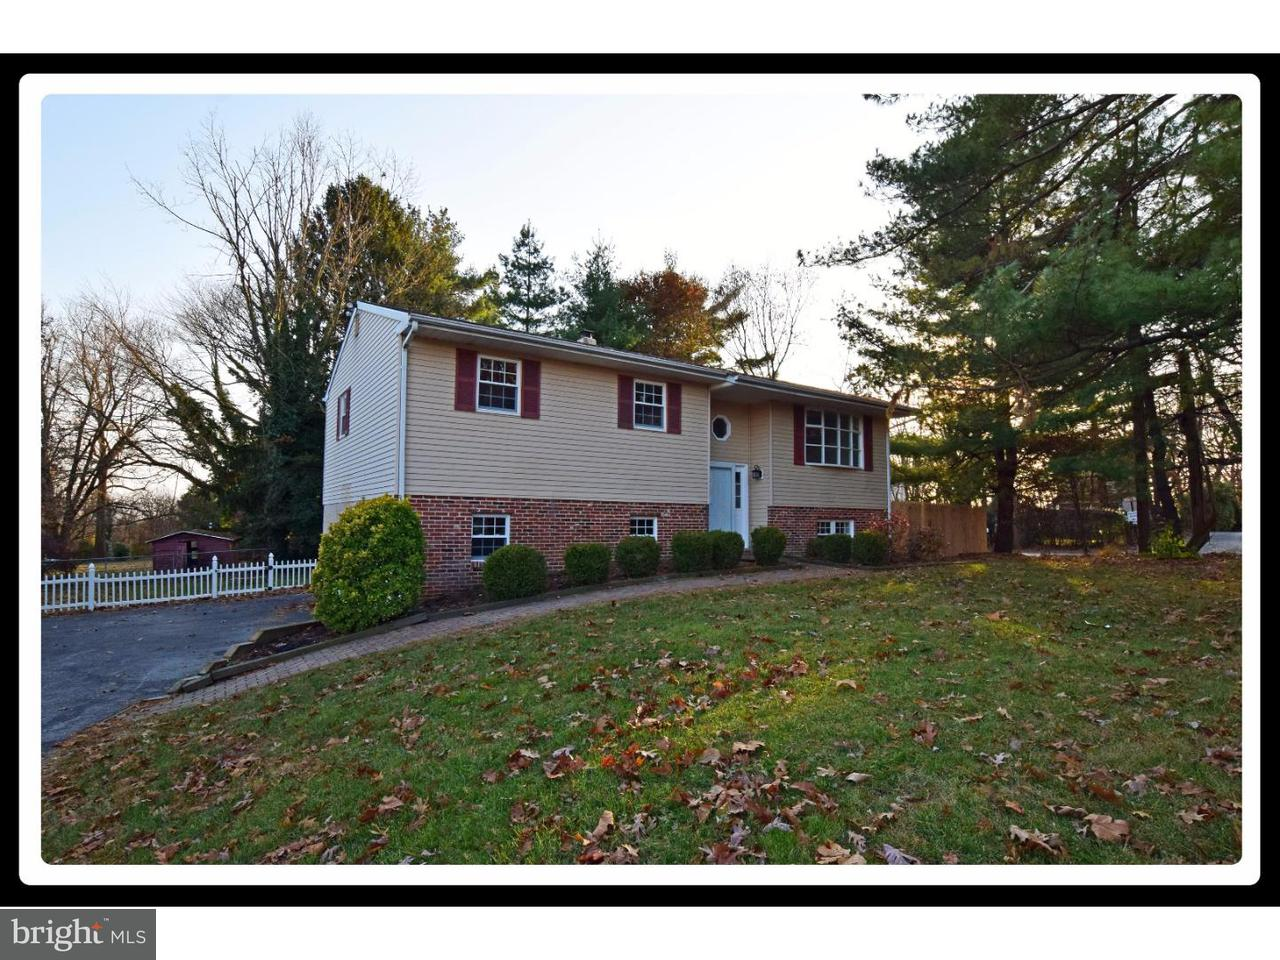 91 S Pennell Media, PA 19063